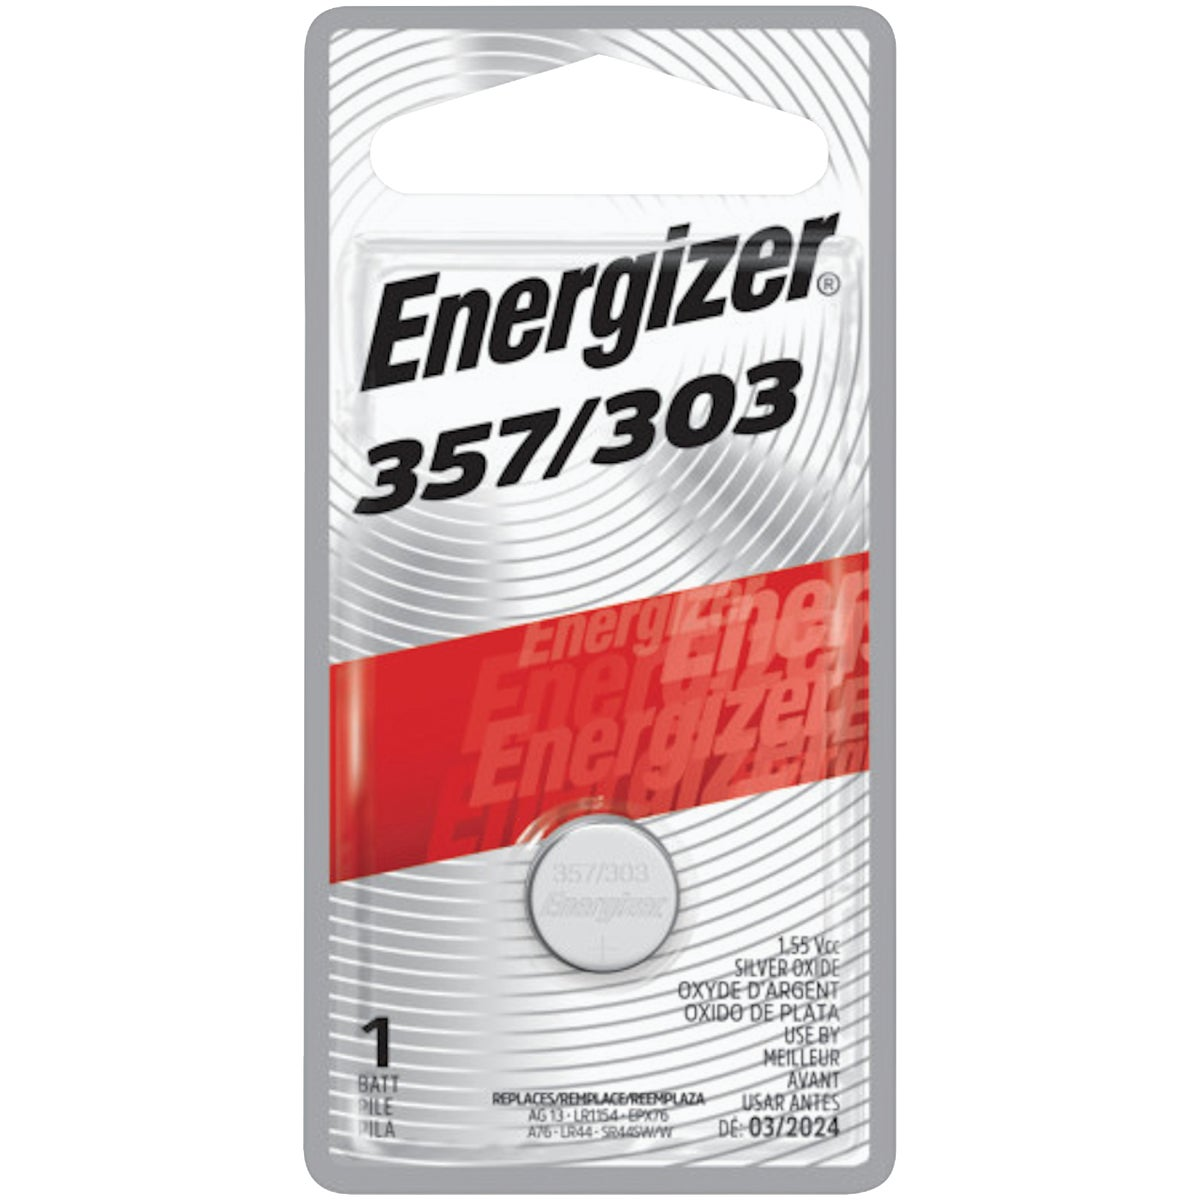 1.6V WATCH BATTERY - 357BPZ by Energizer